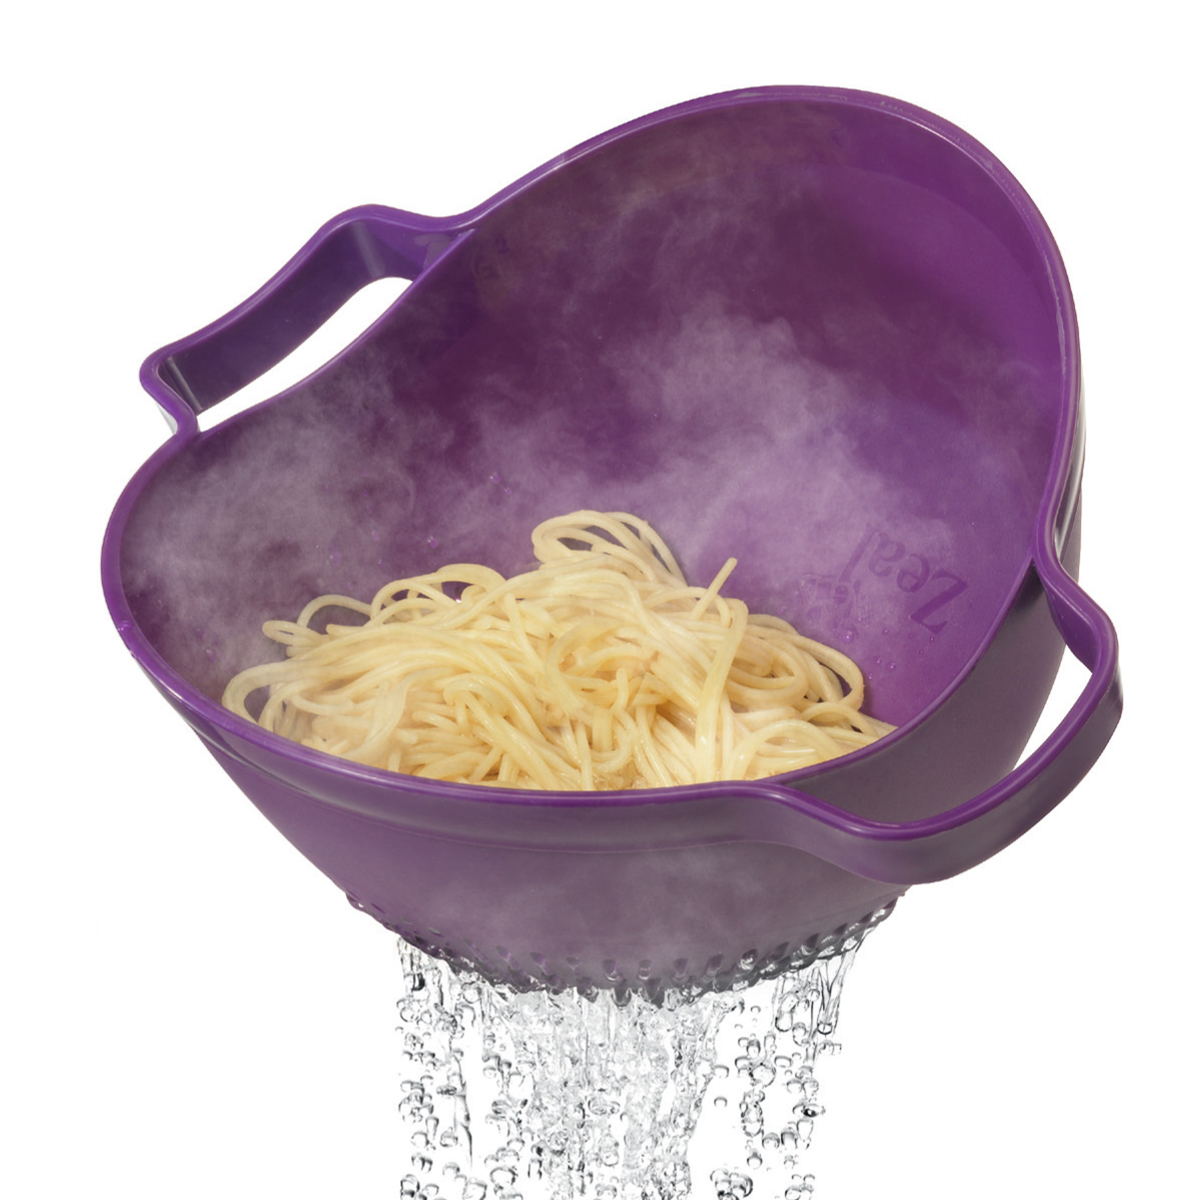 drain tilt and serve colander - Kcheninnovationen 2015